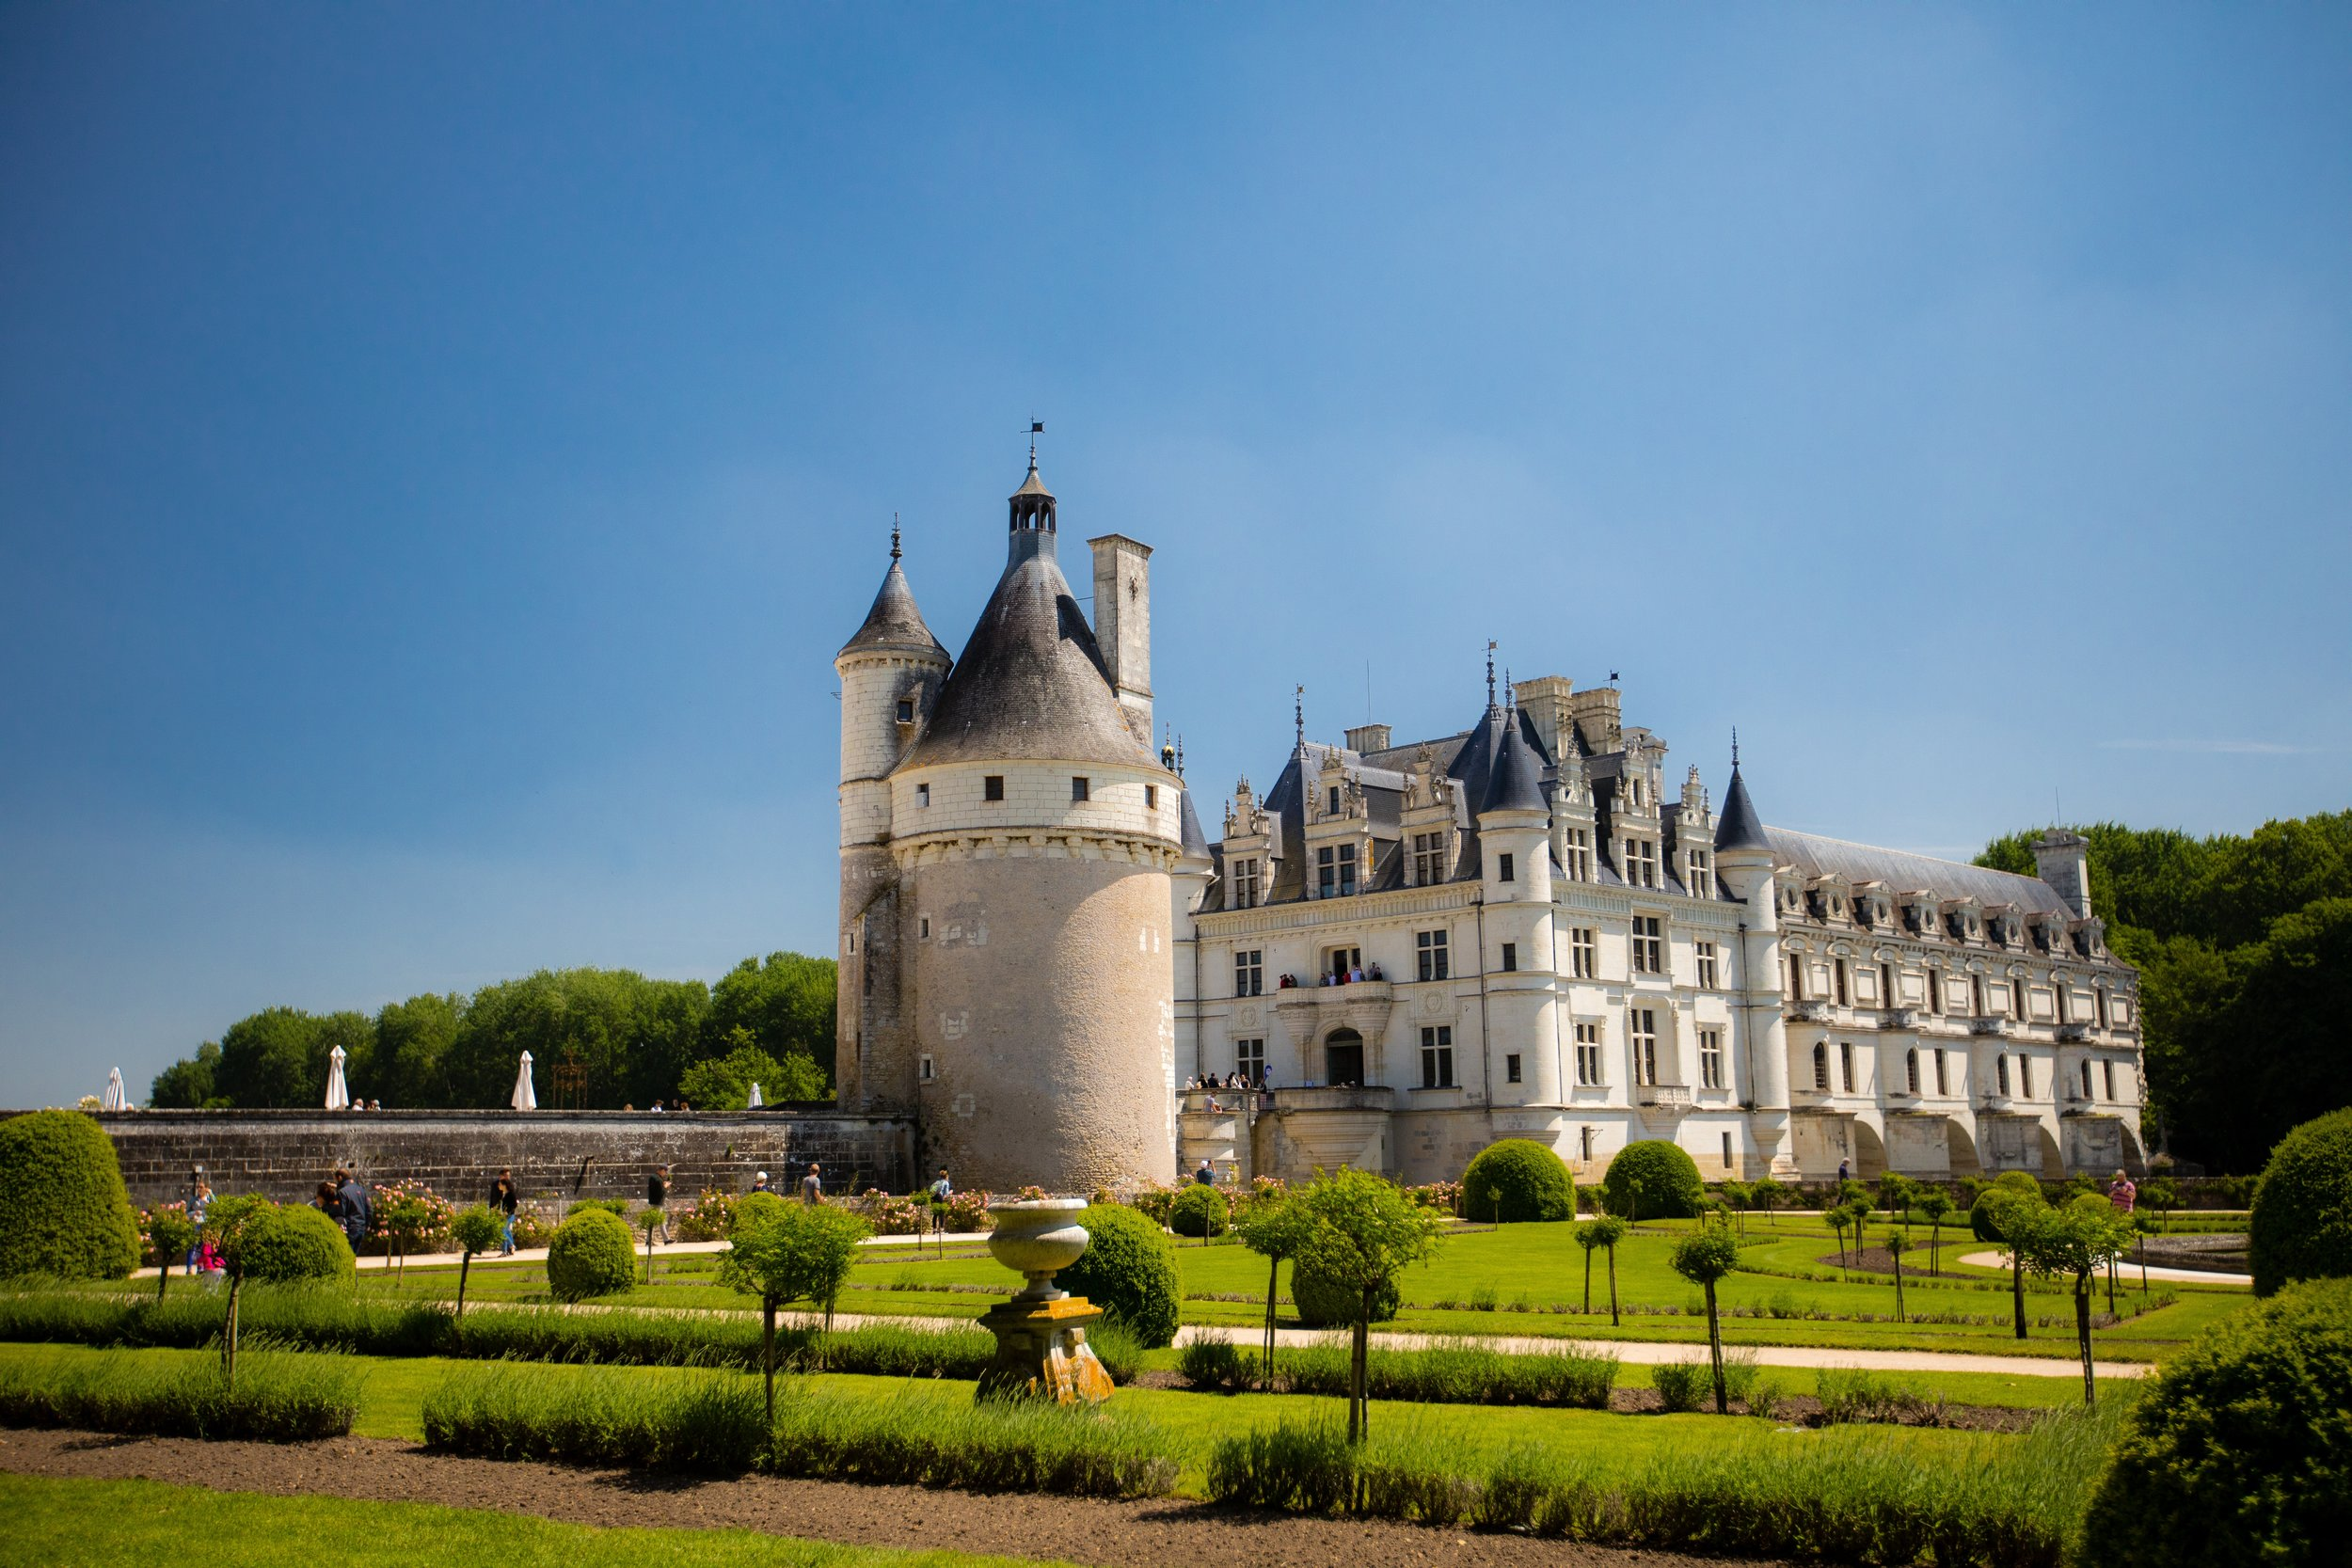 Beyond Paris there are a number of amazing parts of France that deserve a visit too. Places like the Loire Valley, Normandy, Versailles, and Alsace are unique ways to add onto your itinerary and enjoy beautiful France beyond Paris. / goseekexplore.com/ #paris #france #europe